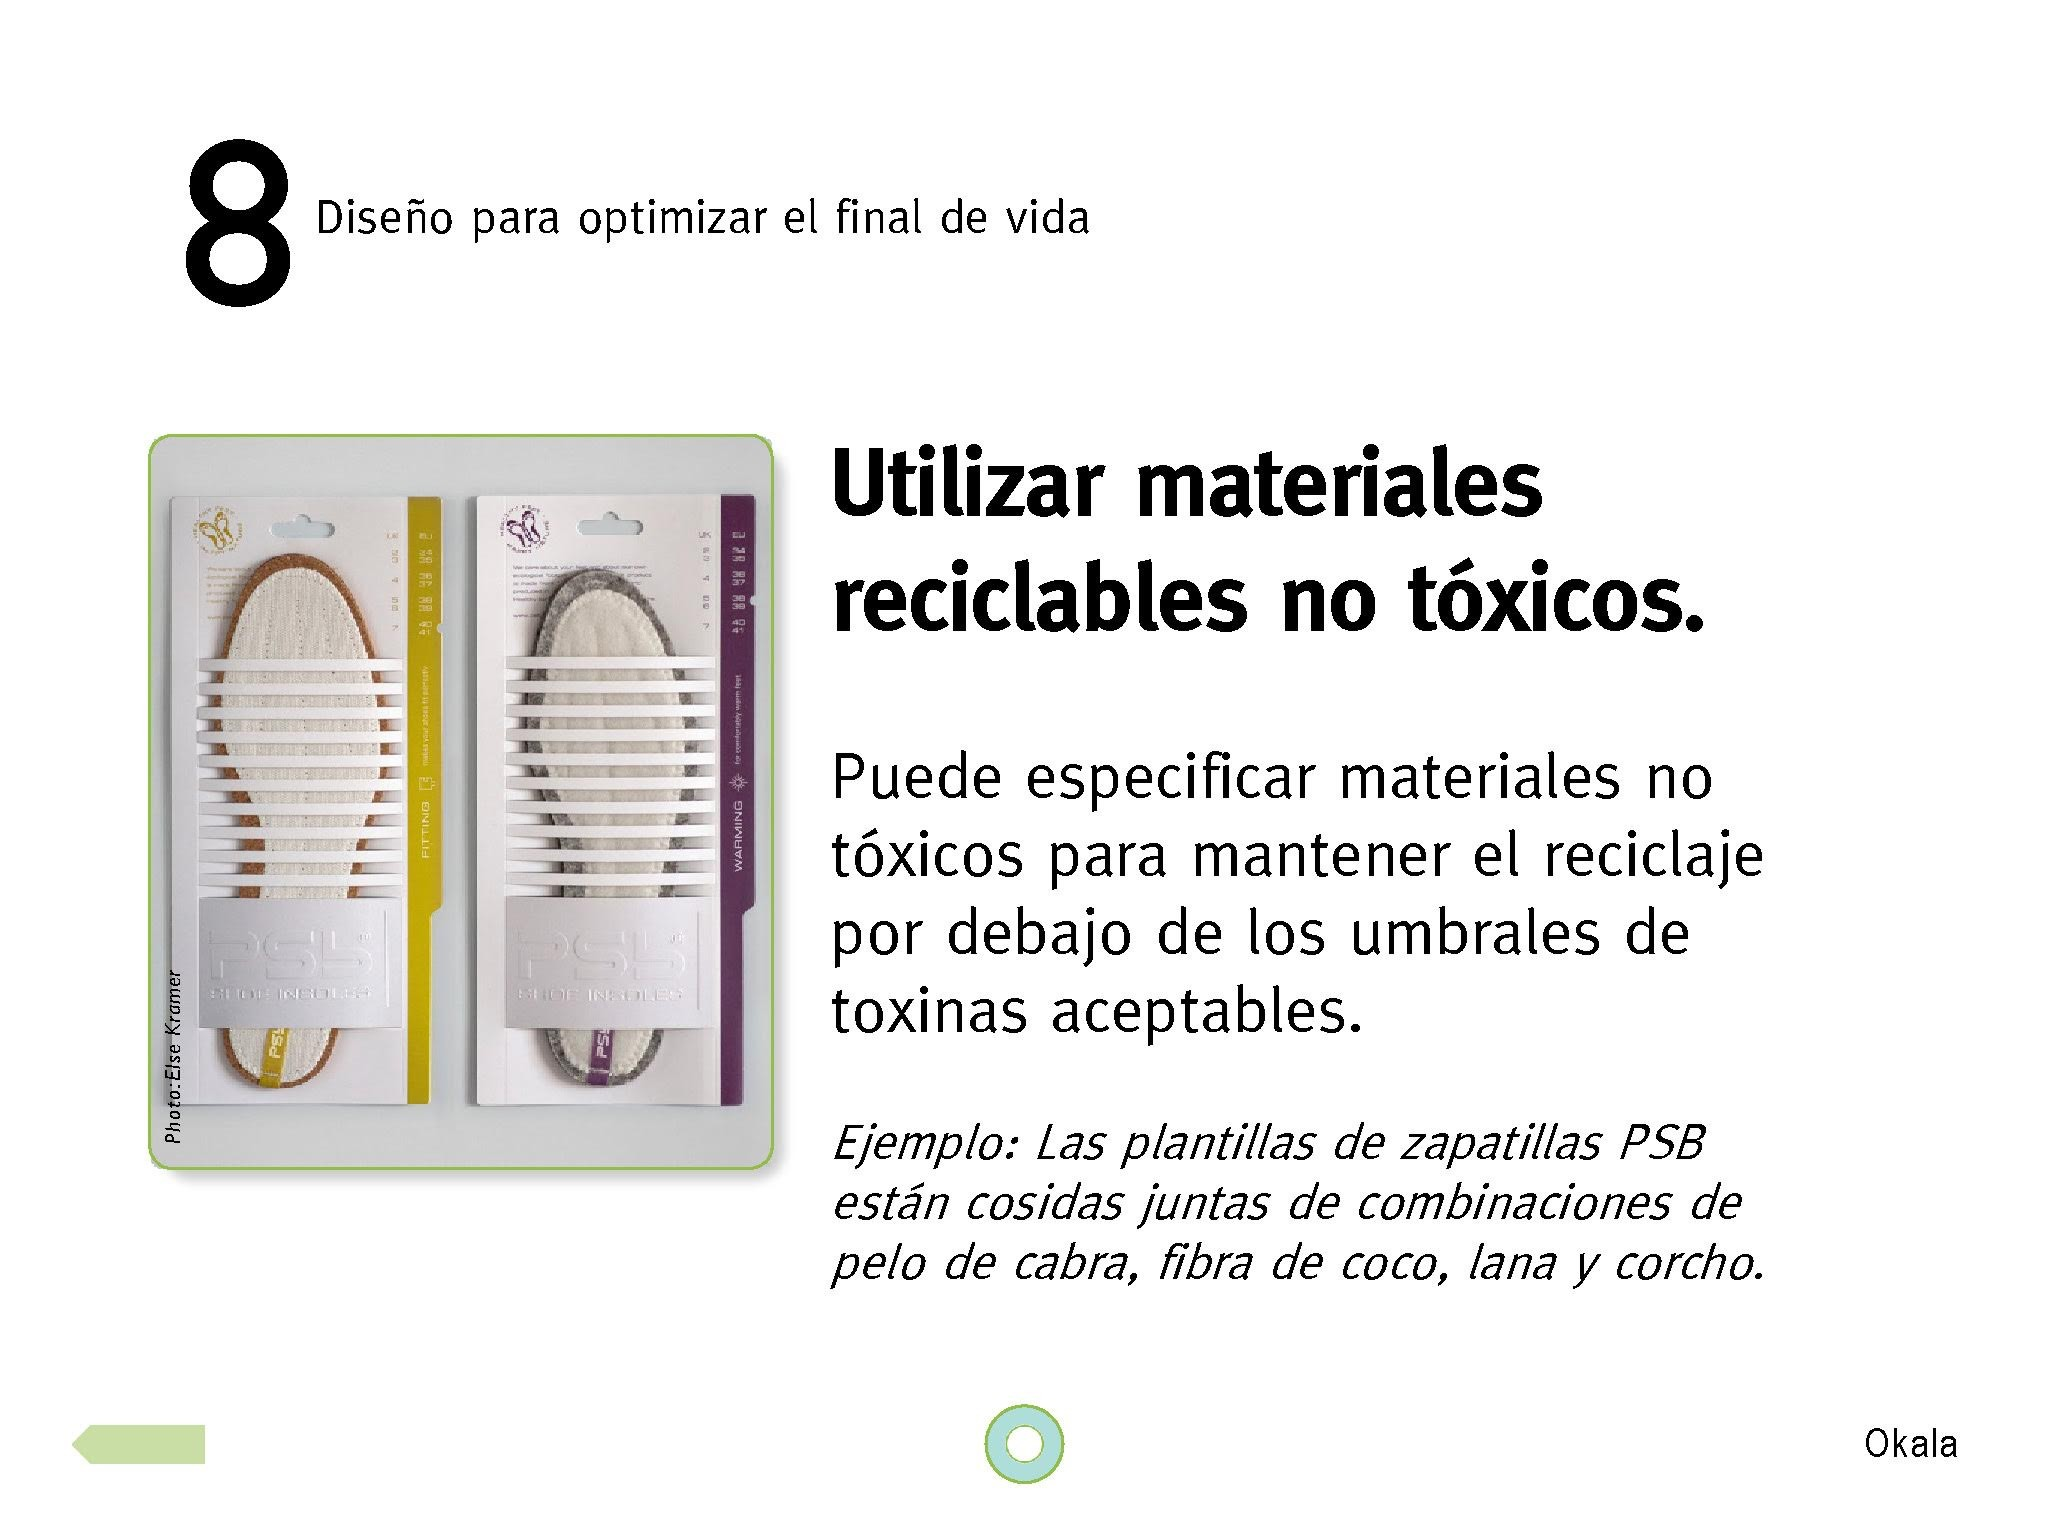 okala-ecodesign-strategy-guide-2012-spanish.new_page_44-1